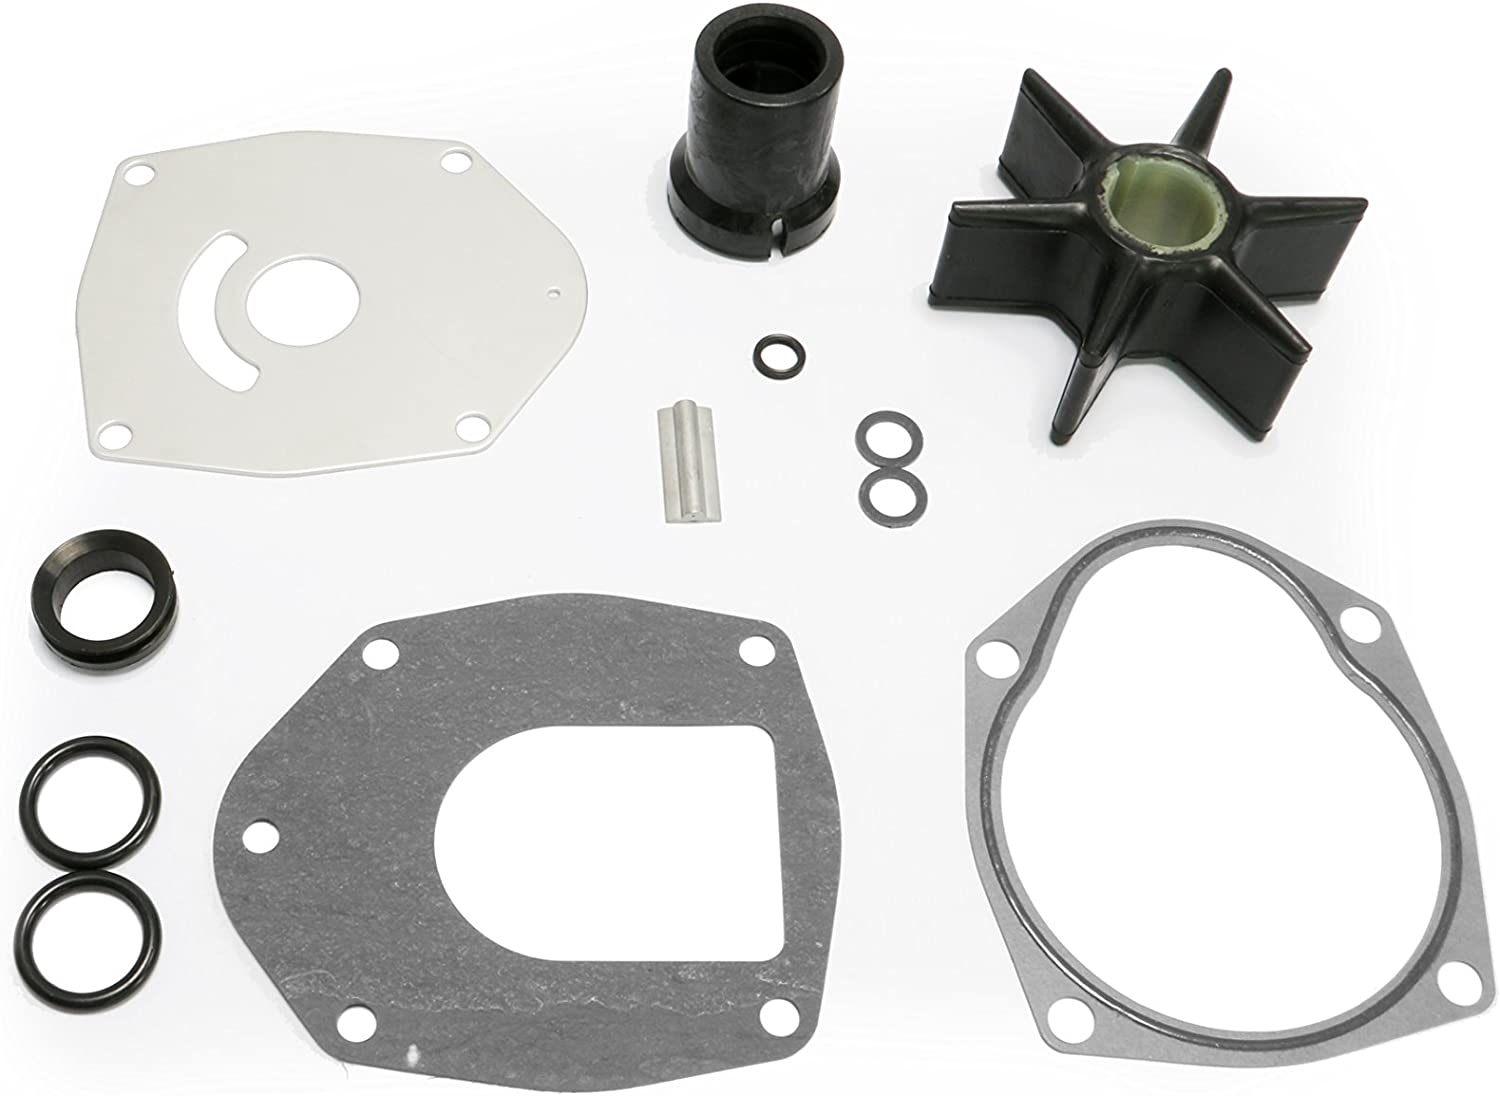 Createshao Outboard Water Pump Kit for Mercury Mercruiser Alpha One Boat Engine 47-43026Q06 40-250 HP Sierra 18-3214